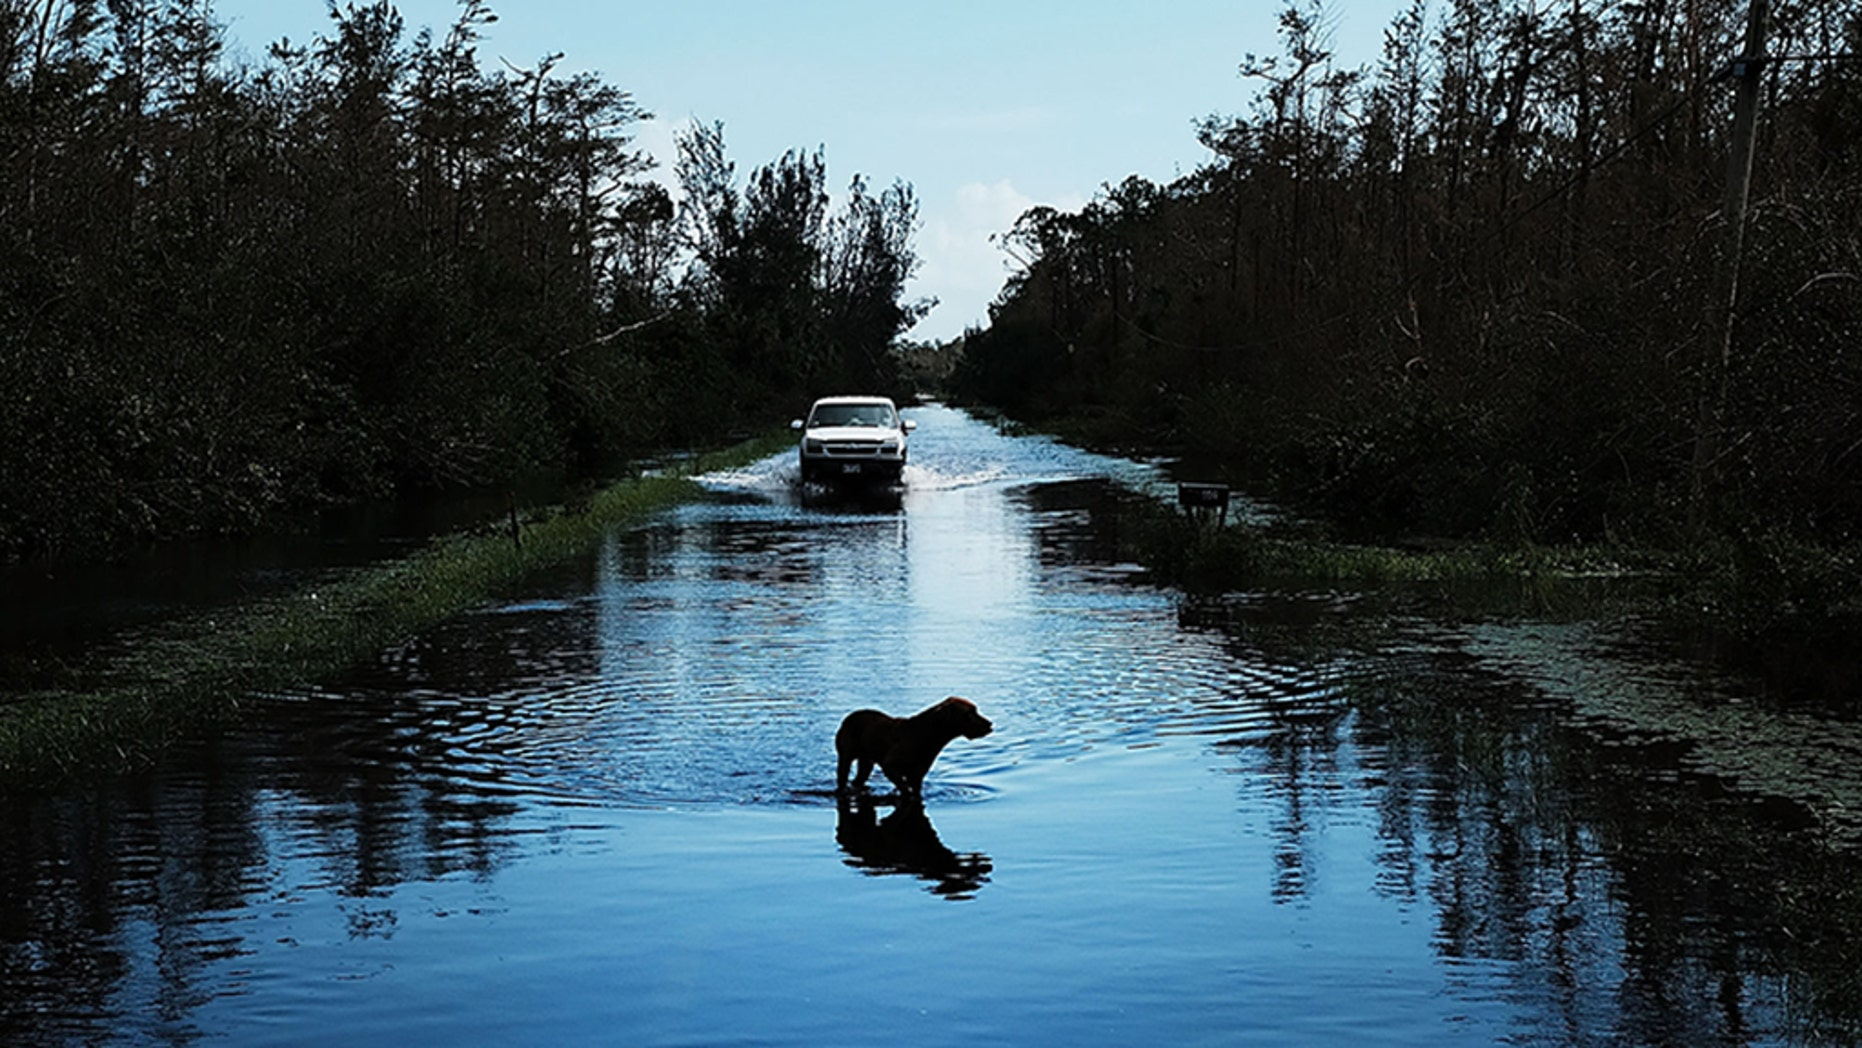 The Florida Senate Agriculture Committee on Monday approved a bill that would punish those who leave their pets chained up or unattended during natural or manmade disasters.